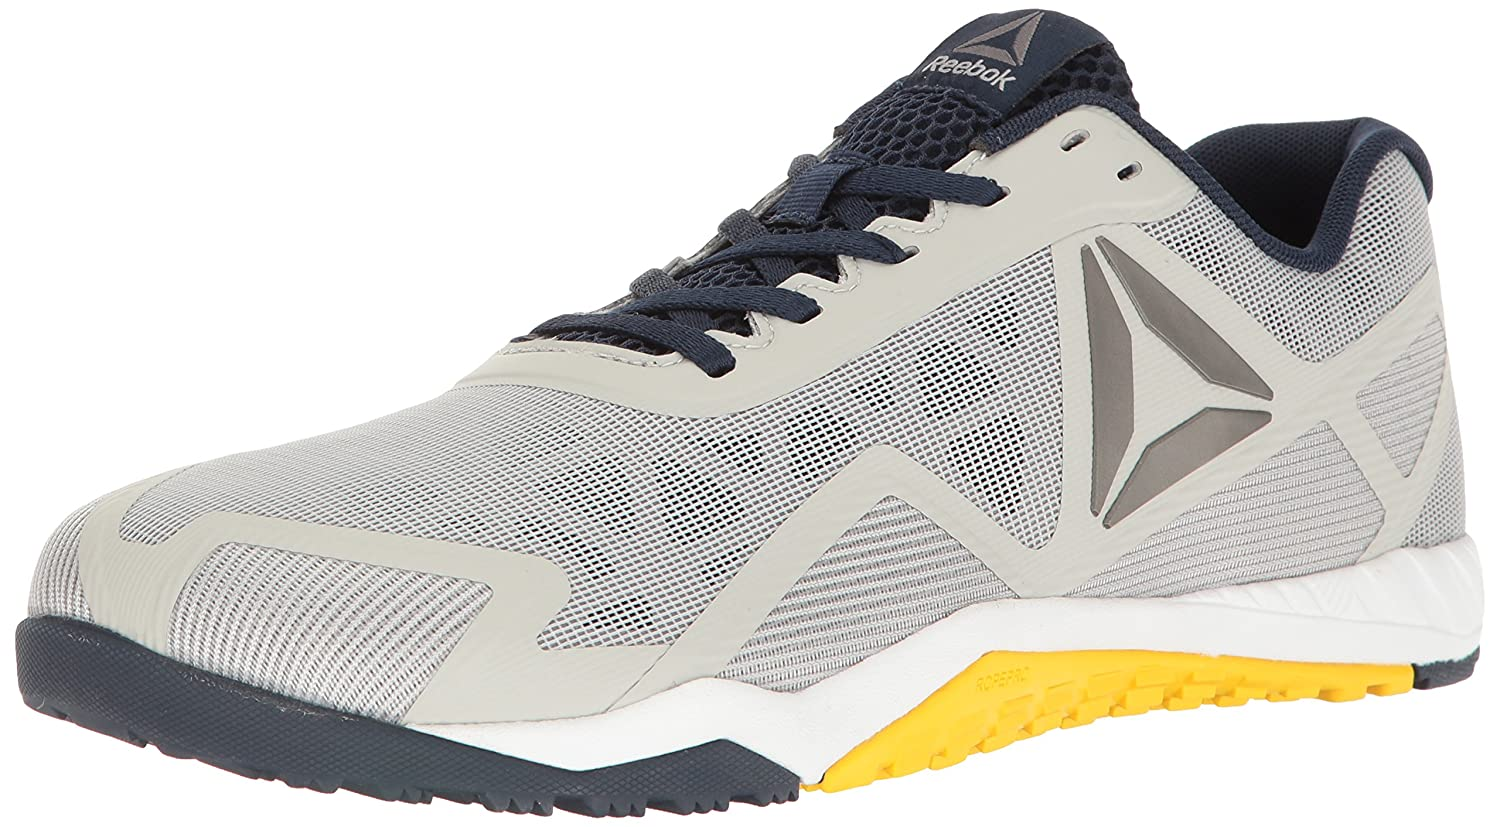 aac811e27086 Details about Reebok Men s Ros Workout Tr 2.0 Cross-trainer Shoe